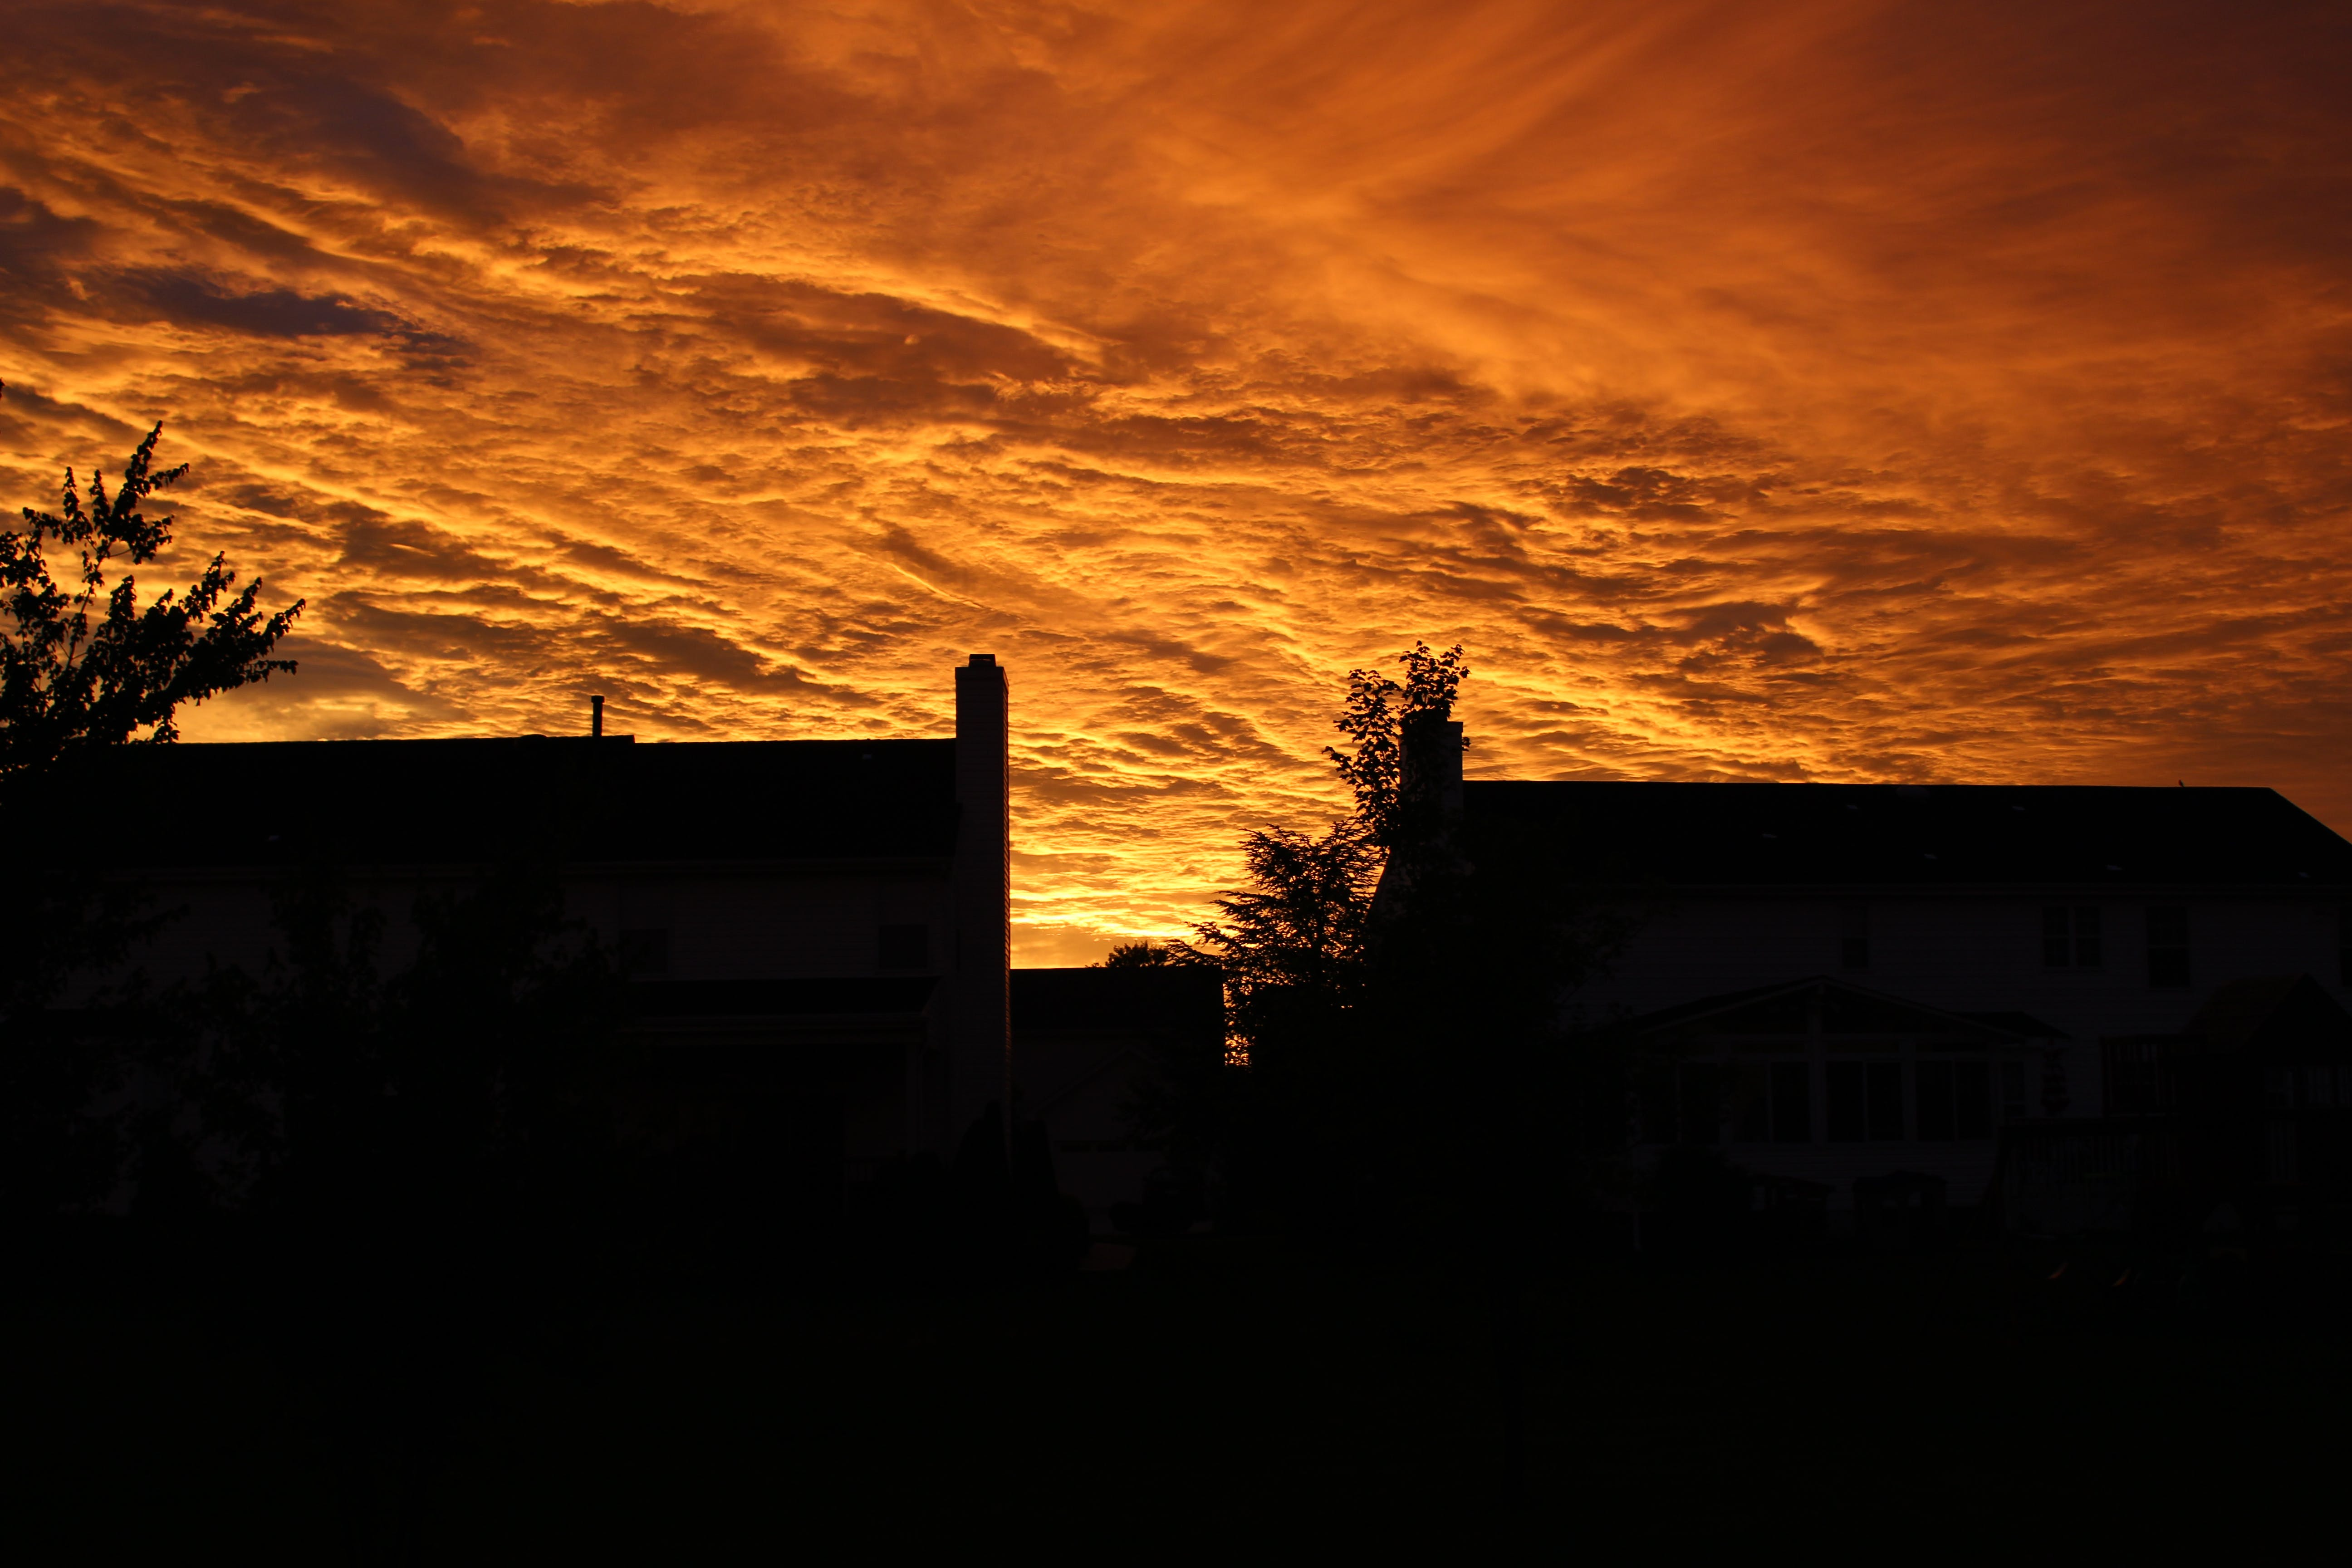 Silhouette of Buildings Under Orange Sky during Sunset